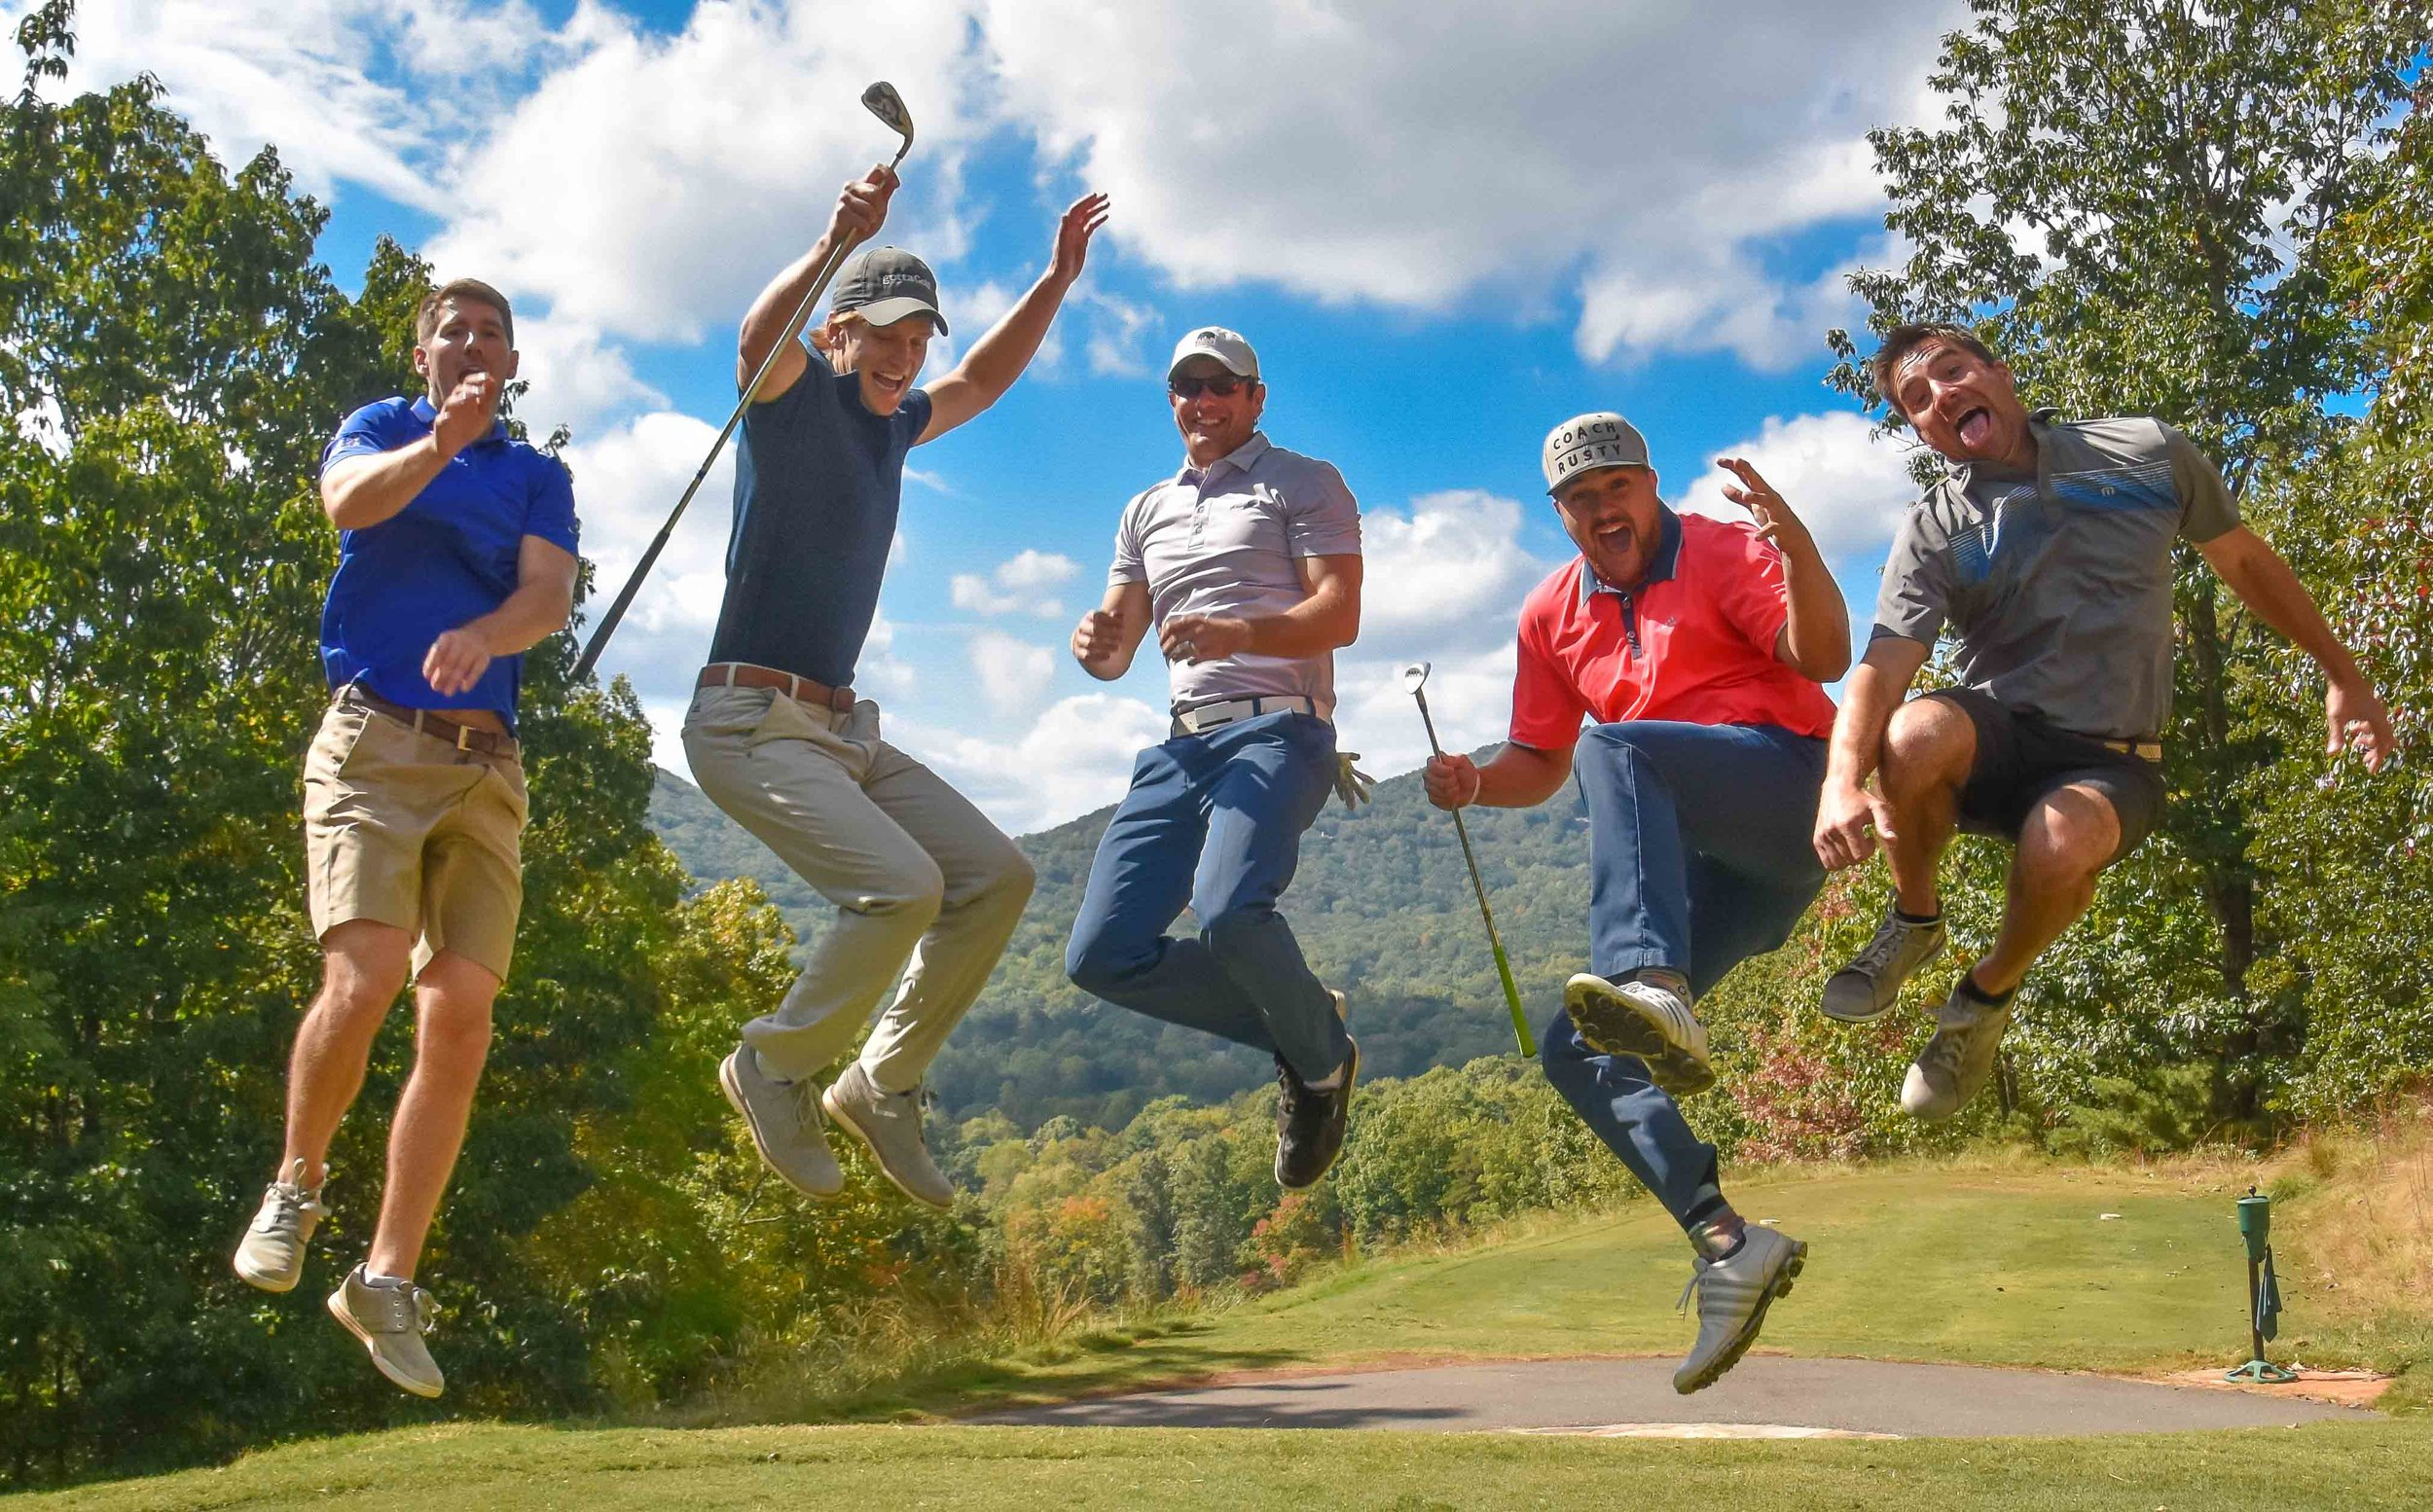 The gottaGolf boys are excited about the tee shot on the 9th hole. Hats off to  Karin Hart  for capturing the magic. A bigger hats off to Clint and the  gottaGolf  team for hosting a fantastic outing.